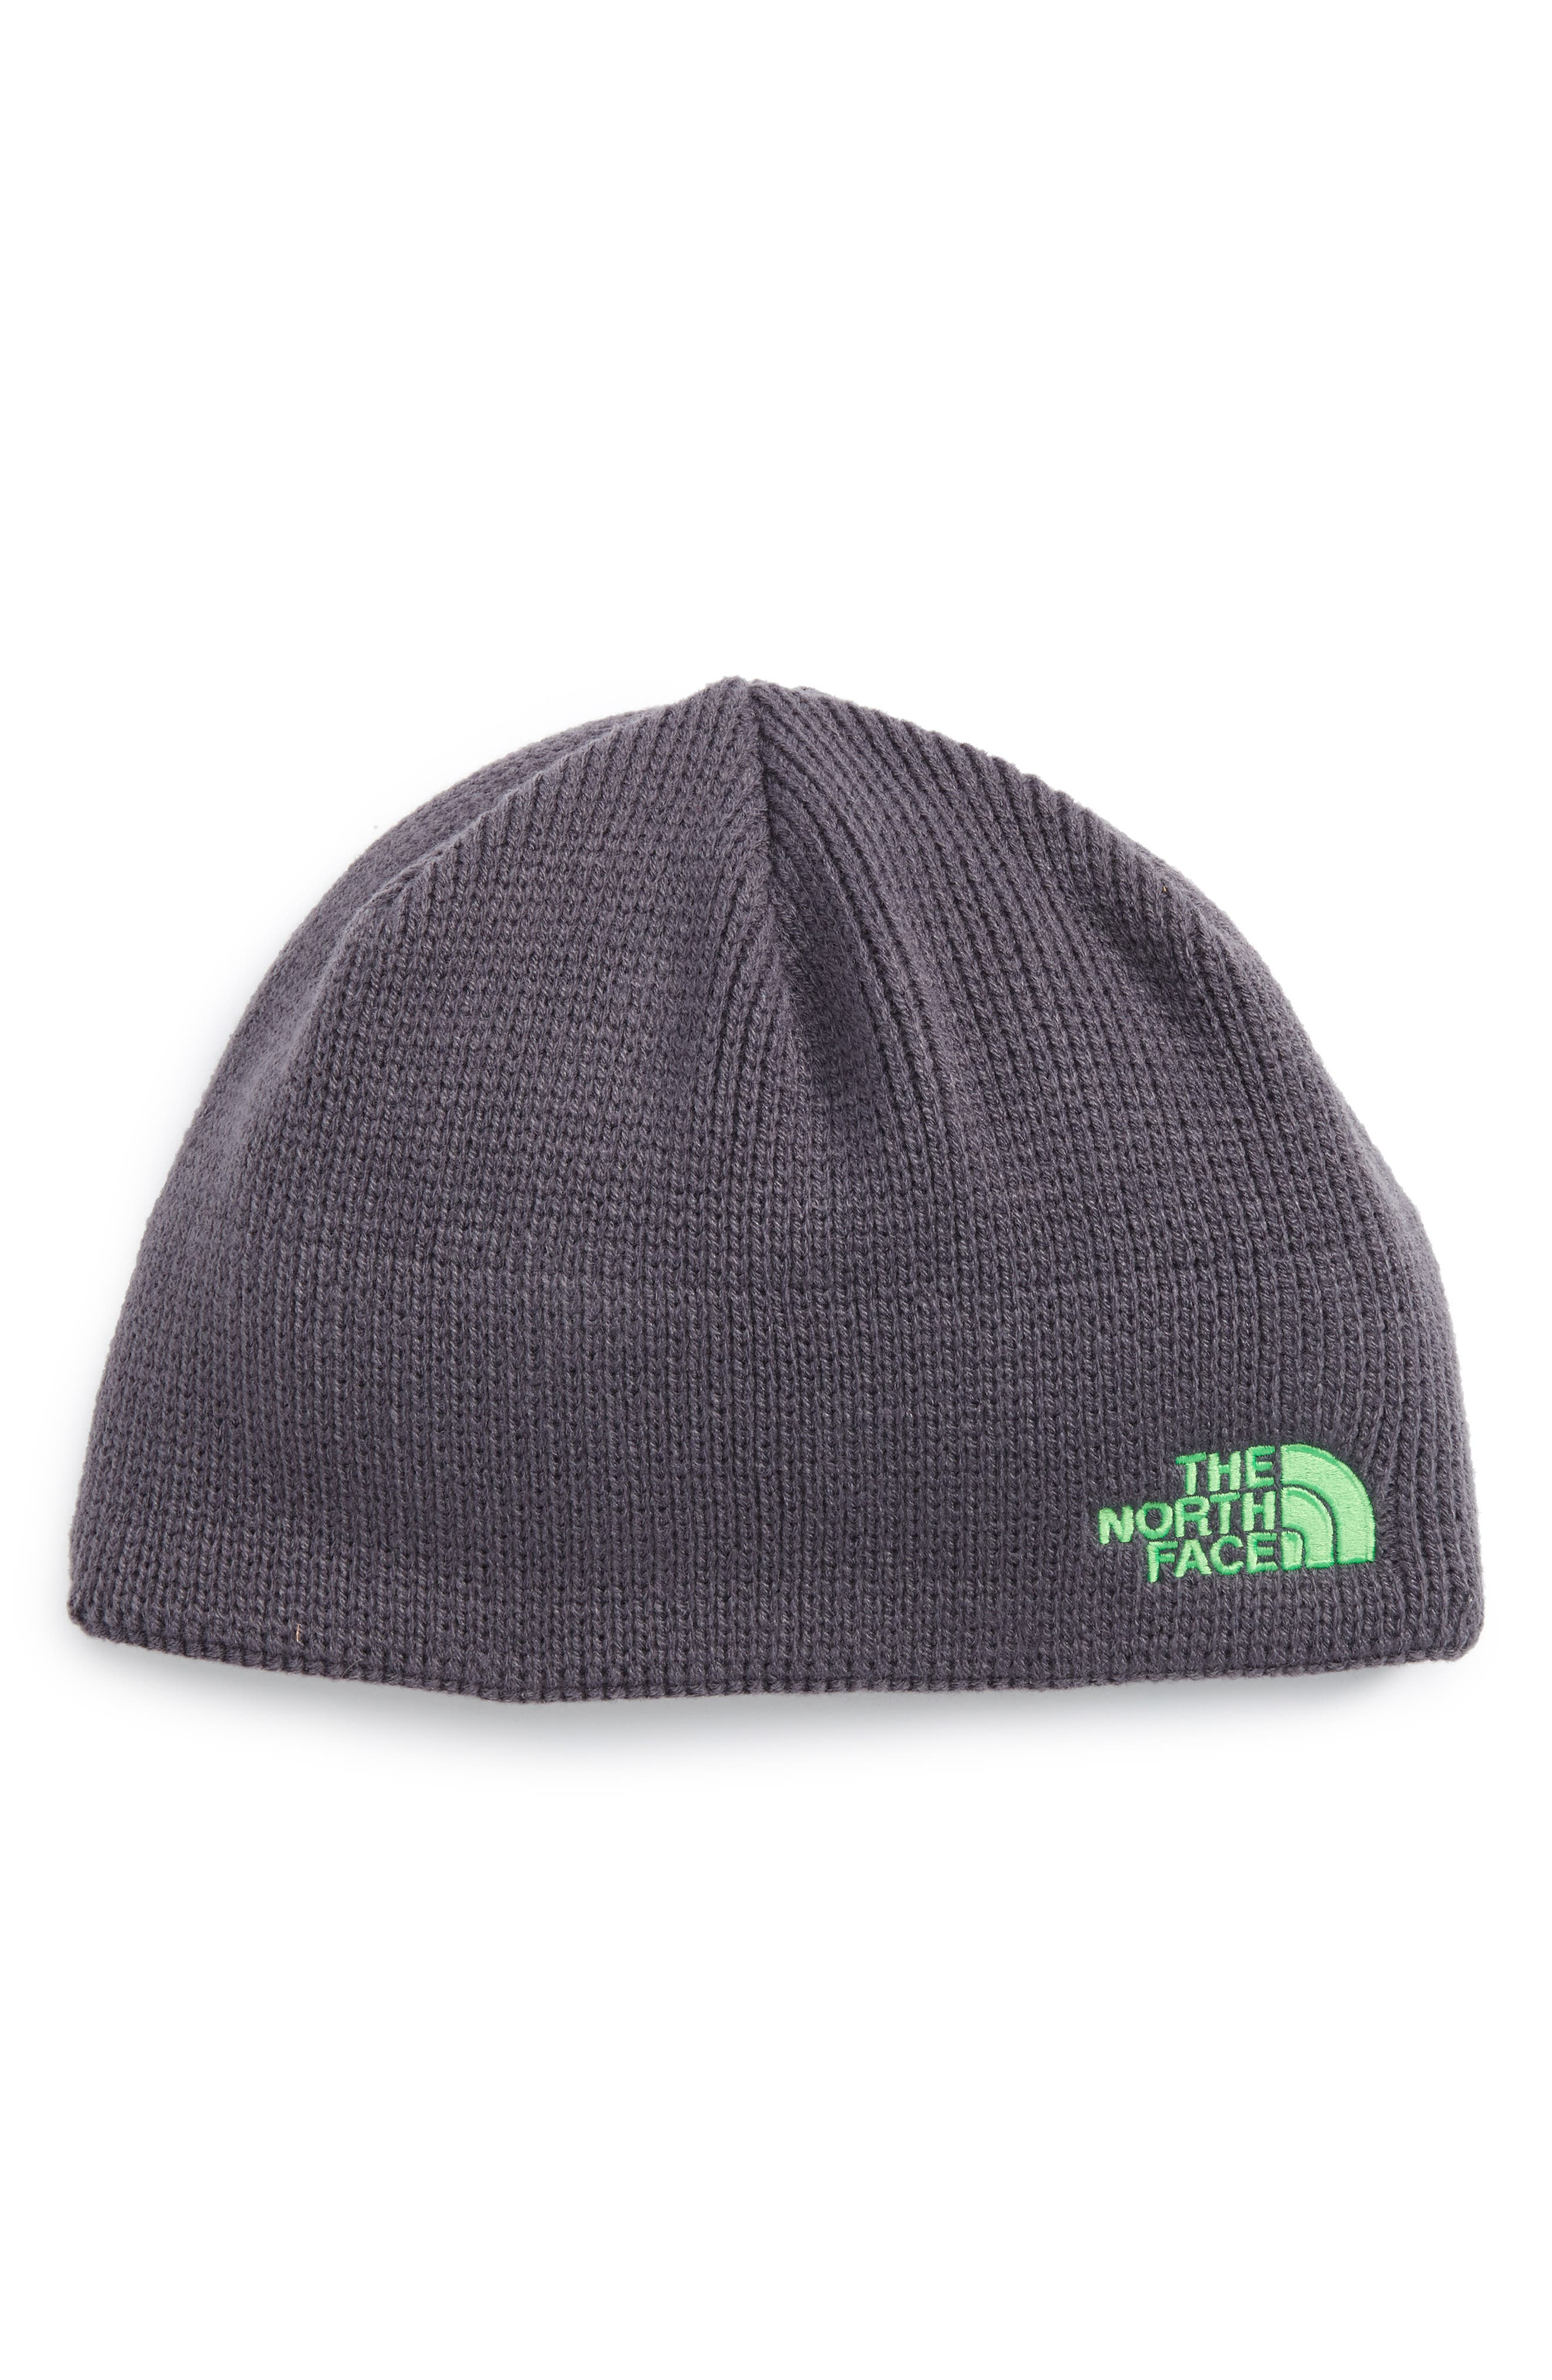 Main Image - The North Face Youth Bones Fleece Lined Beanie (Boys)